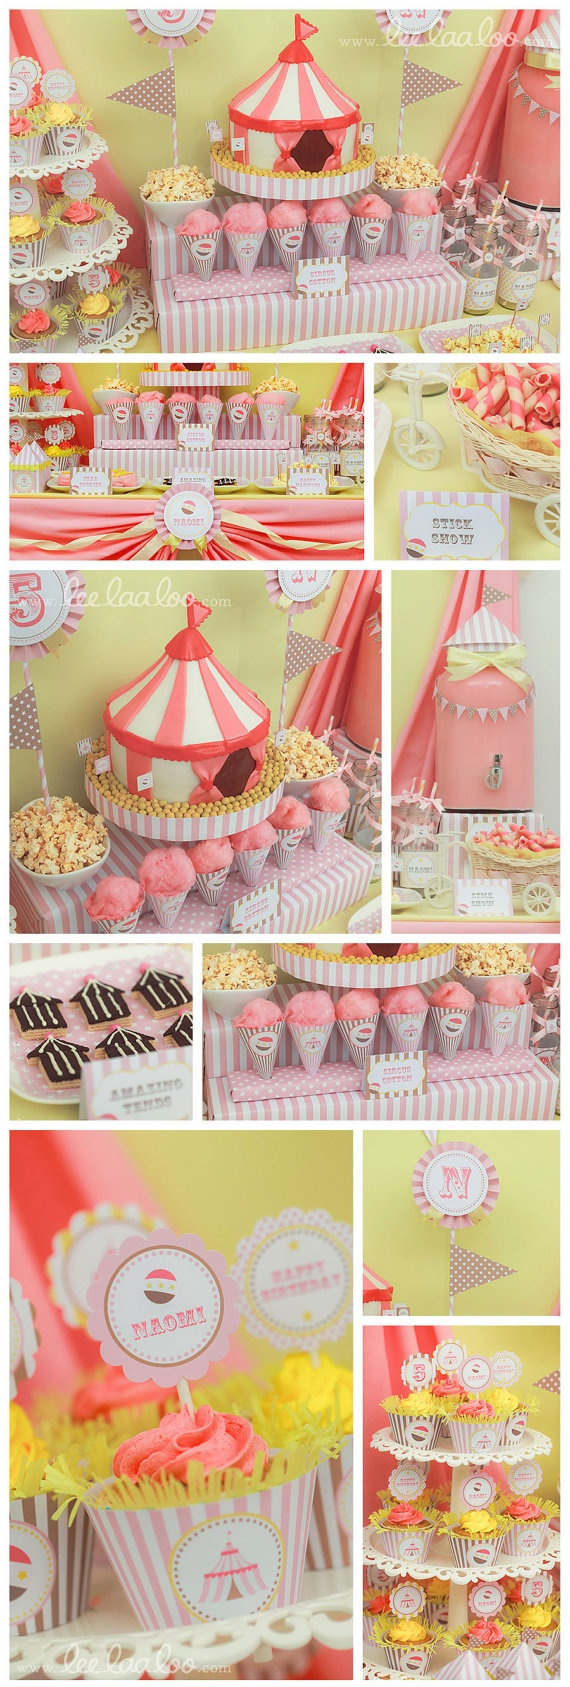 Pink Carnival Circus Birthday Party Like the Popcorn and flags